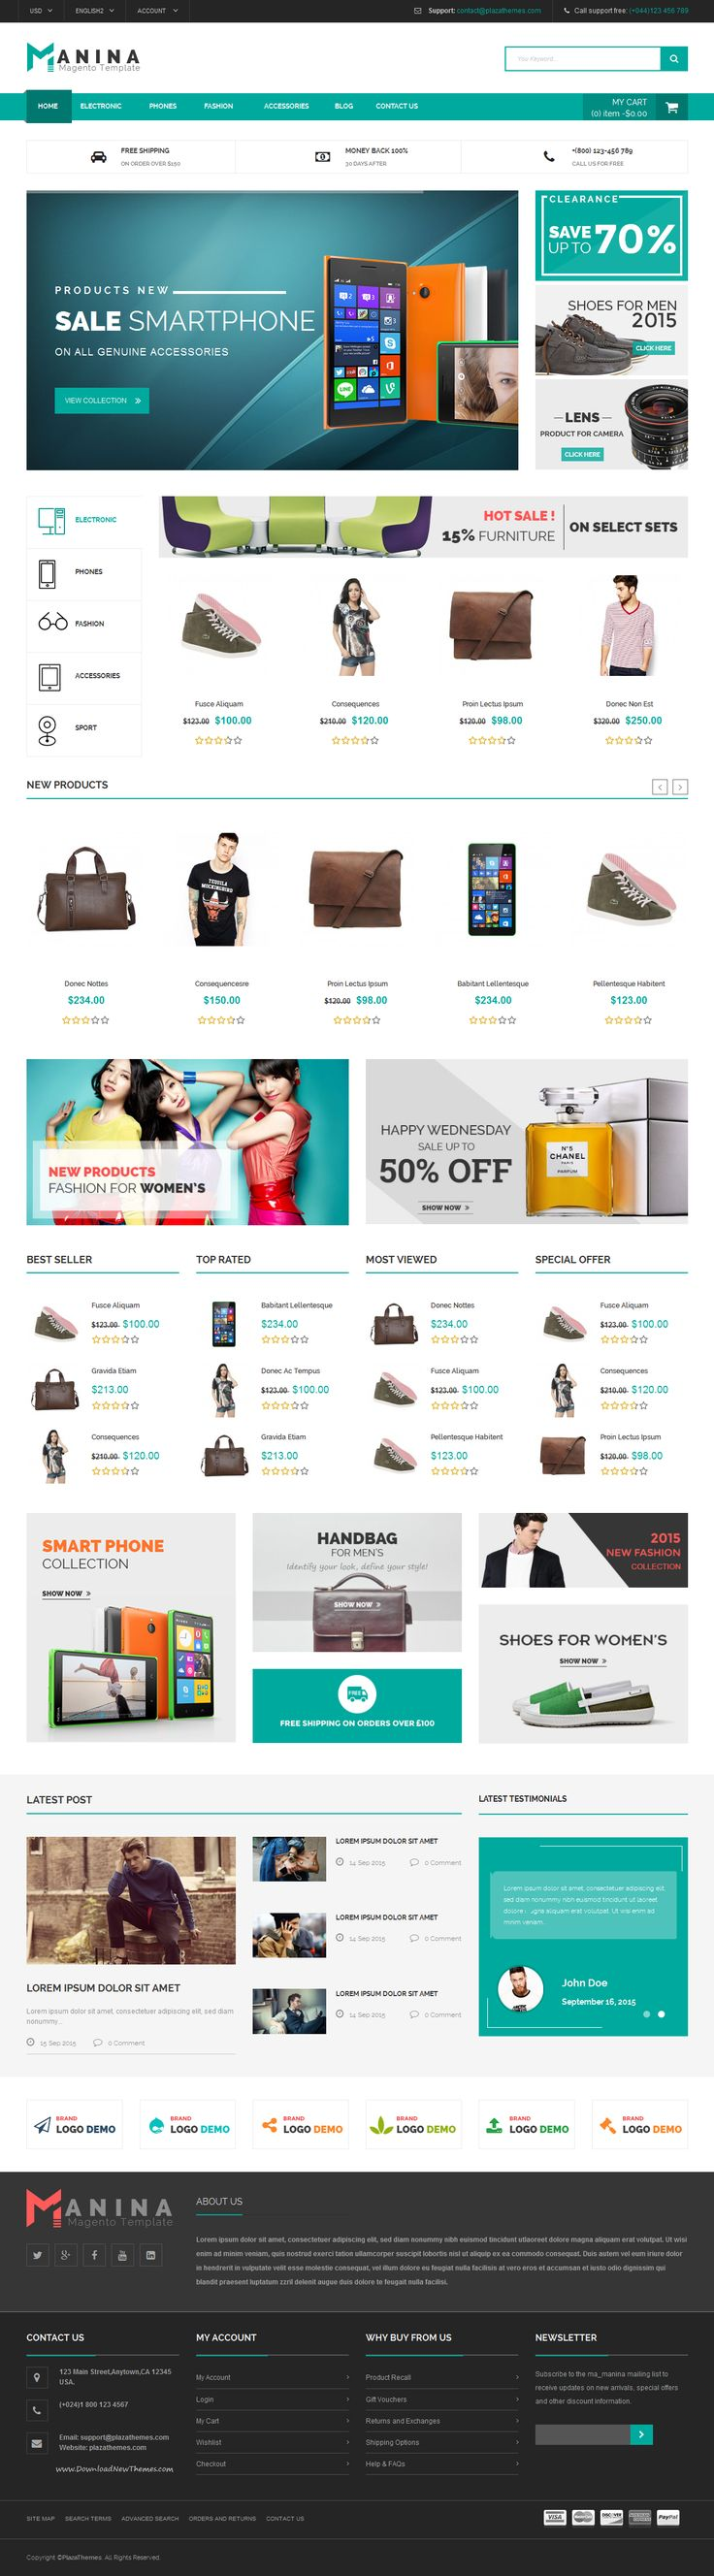 Manina Mega Shop Magento Theme is especially designed to serve for online #supermarket businesses & personal. It is suitable for selling fashion, digital products, electronics products, accessories products, etc. It brings 4 homepage layouts for your choice. #eCommerce #theme